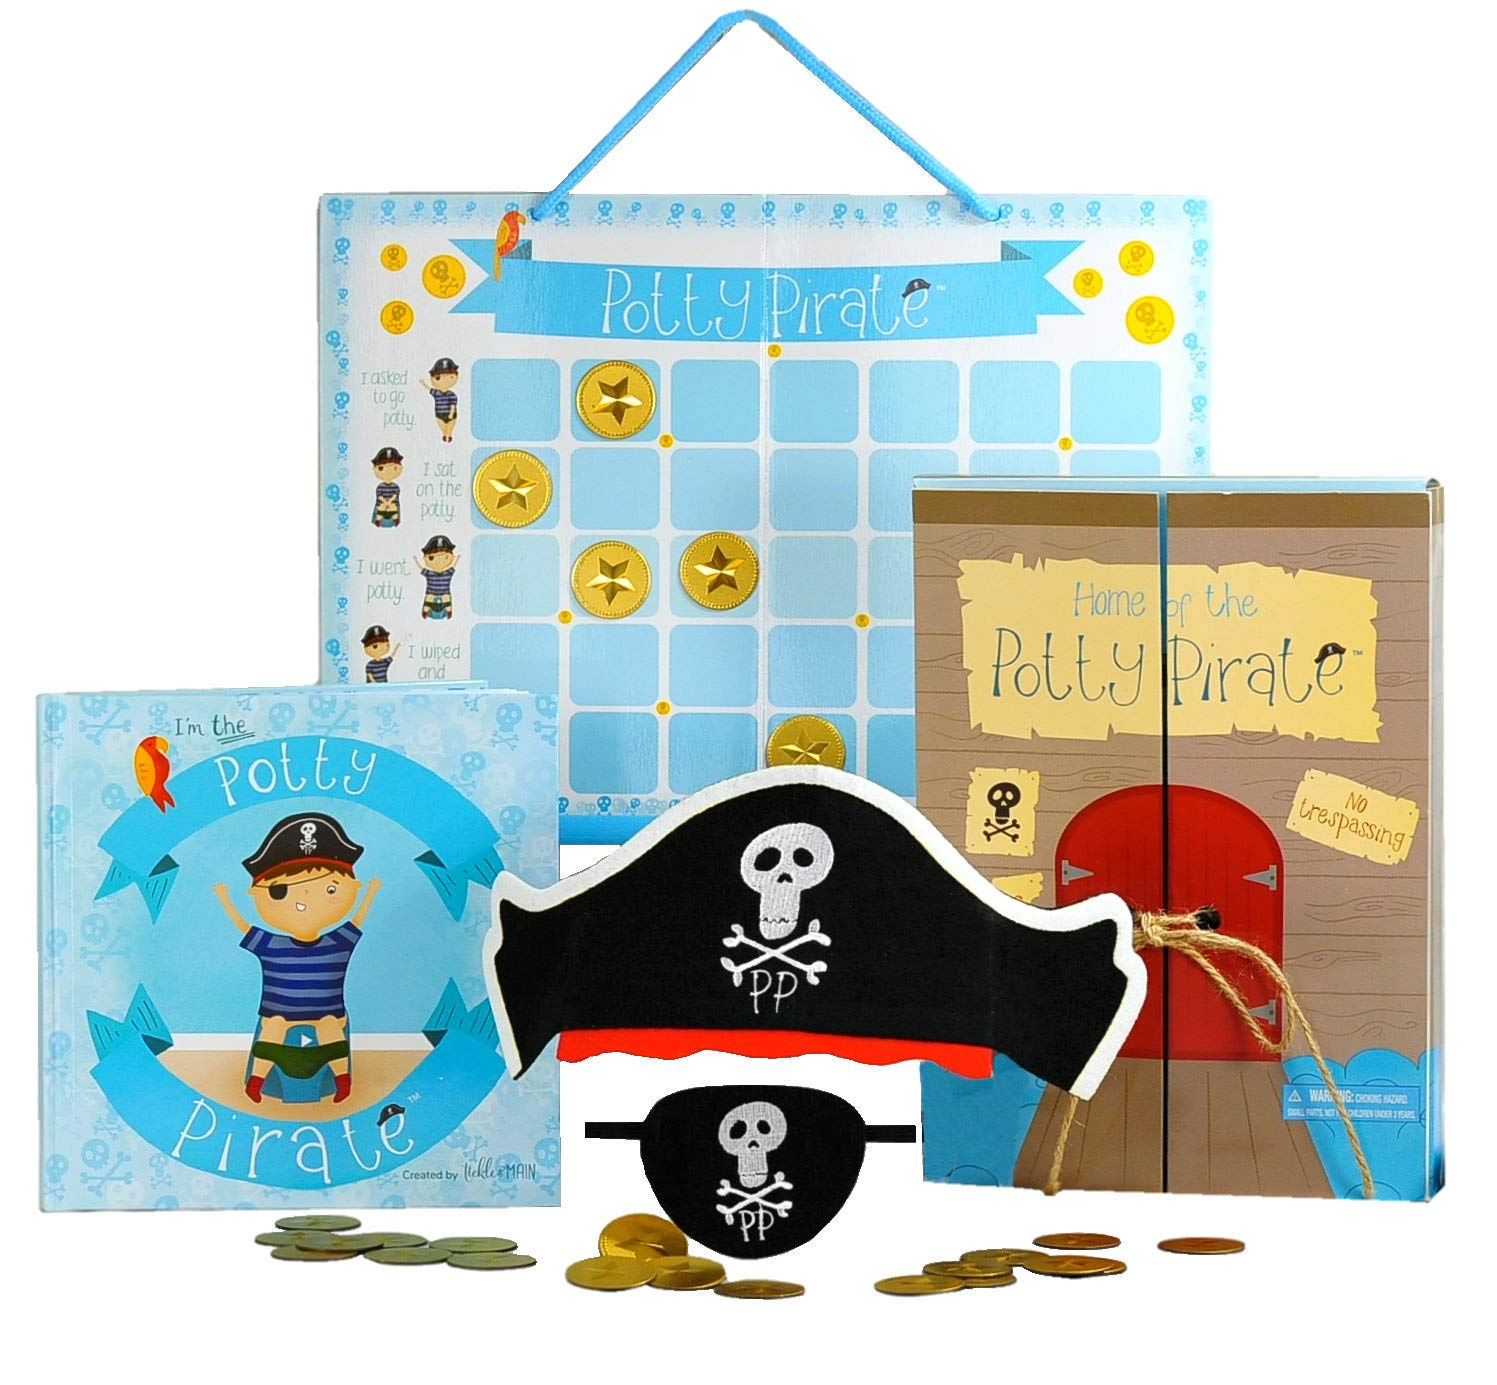 Behavior chart of person throwing something clipart vector stock Pirate Potty Training Set with Book, Potty Chart, Reward Magnets, Pirate  Hat and Patch for Toddler Boys - Comes in Pirate Ship Box. vector stock